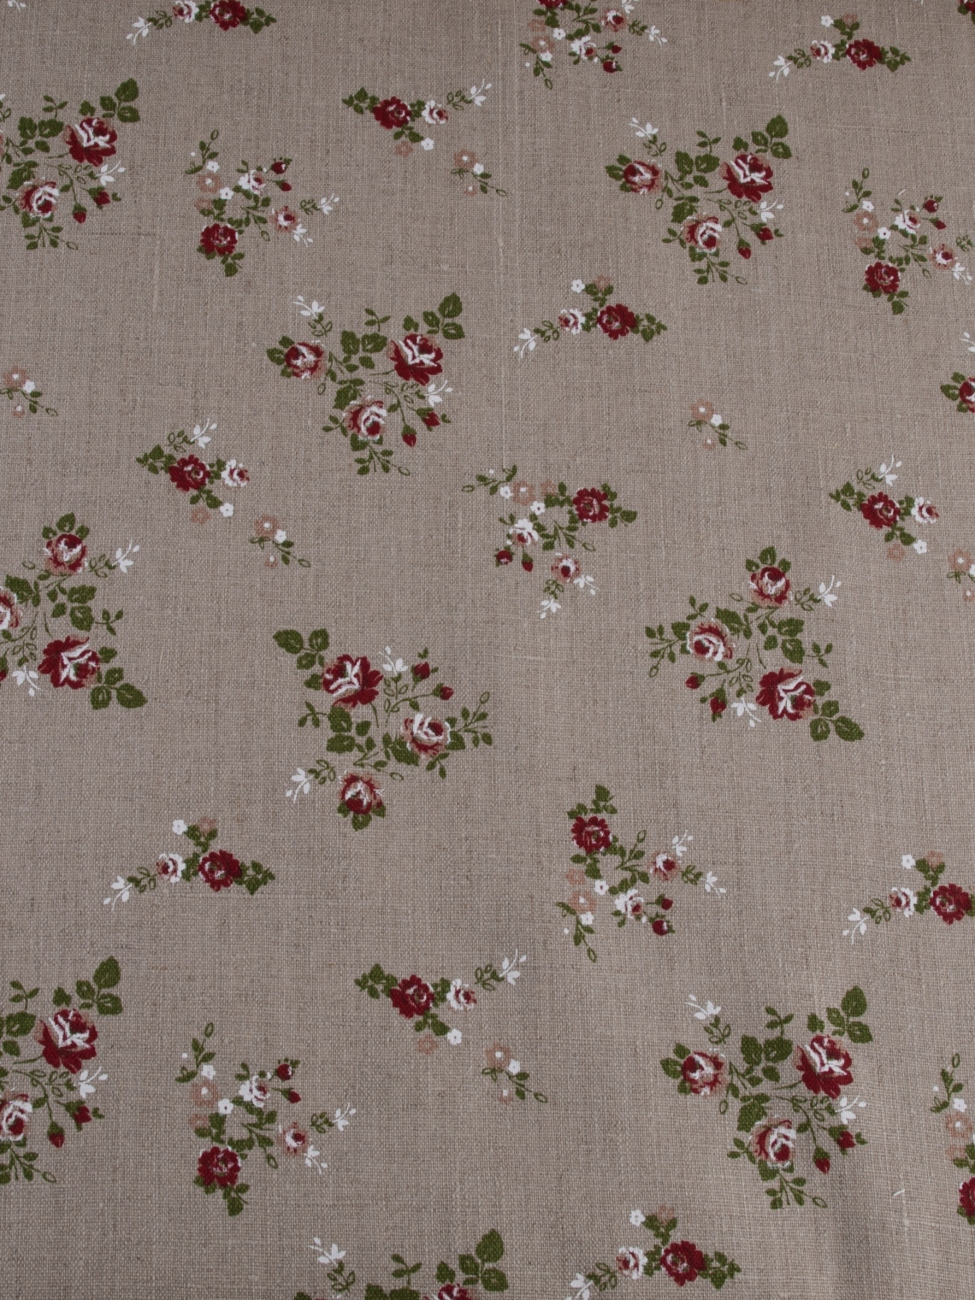 Natural pre-washed linen with small rose print